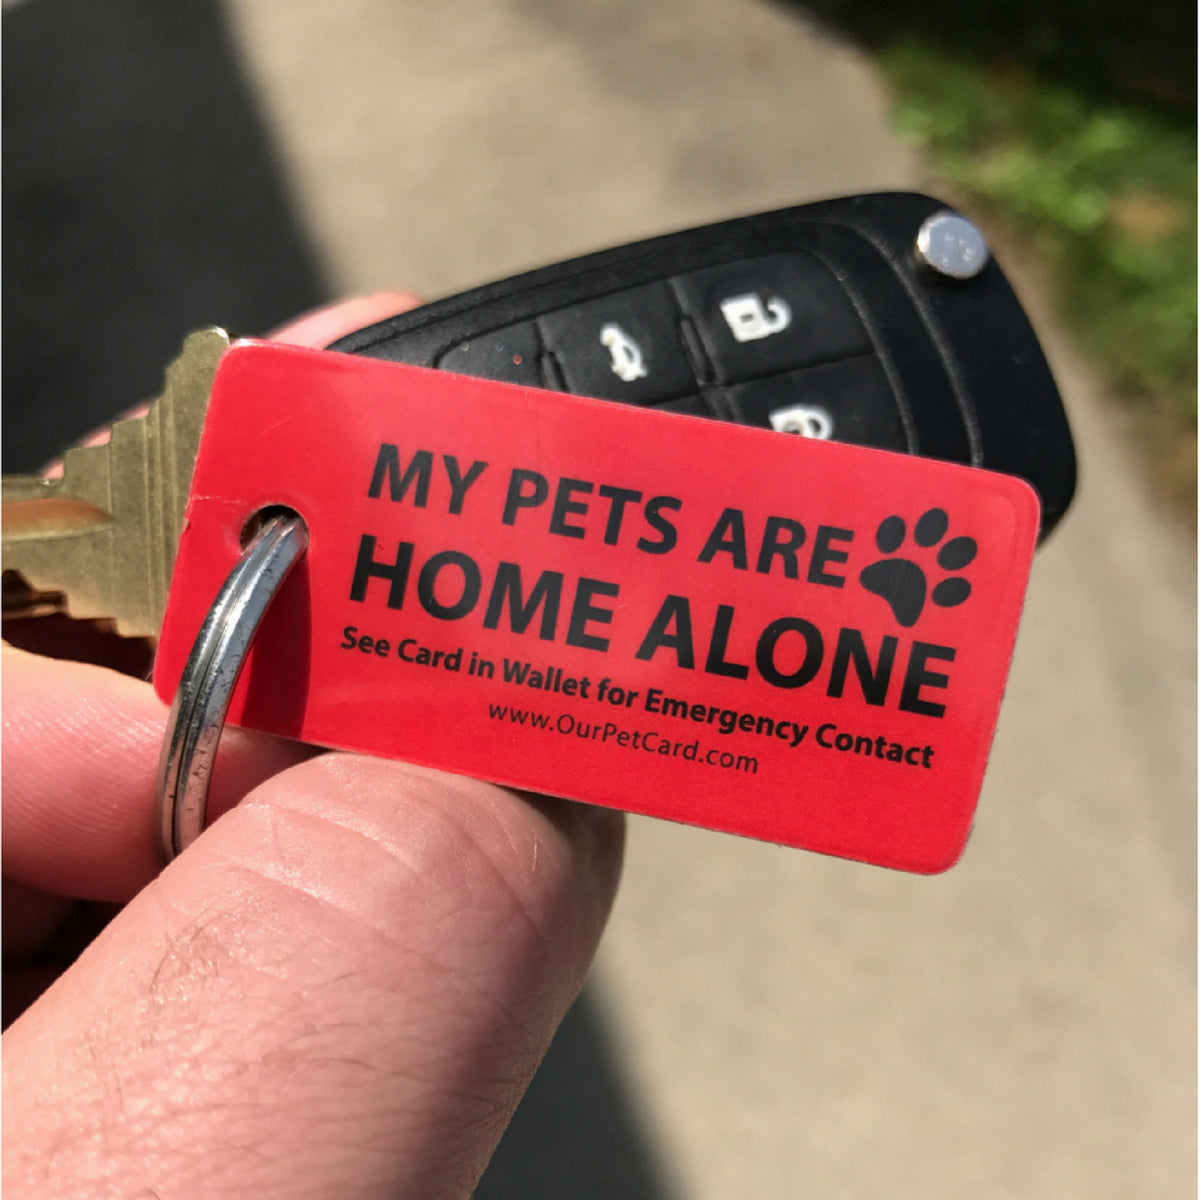 image relating to My Dog is Home Alone Card Printable named Doggy Treatment Reward Box for Animals